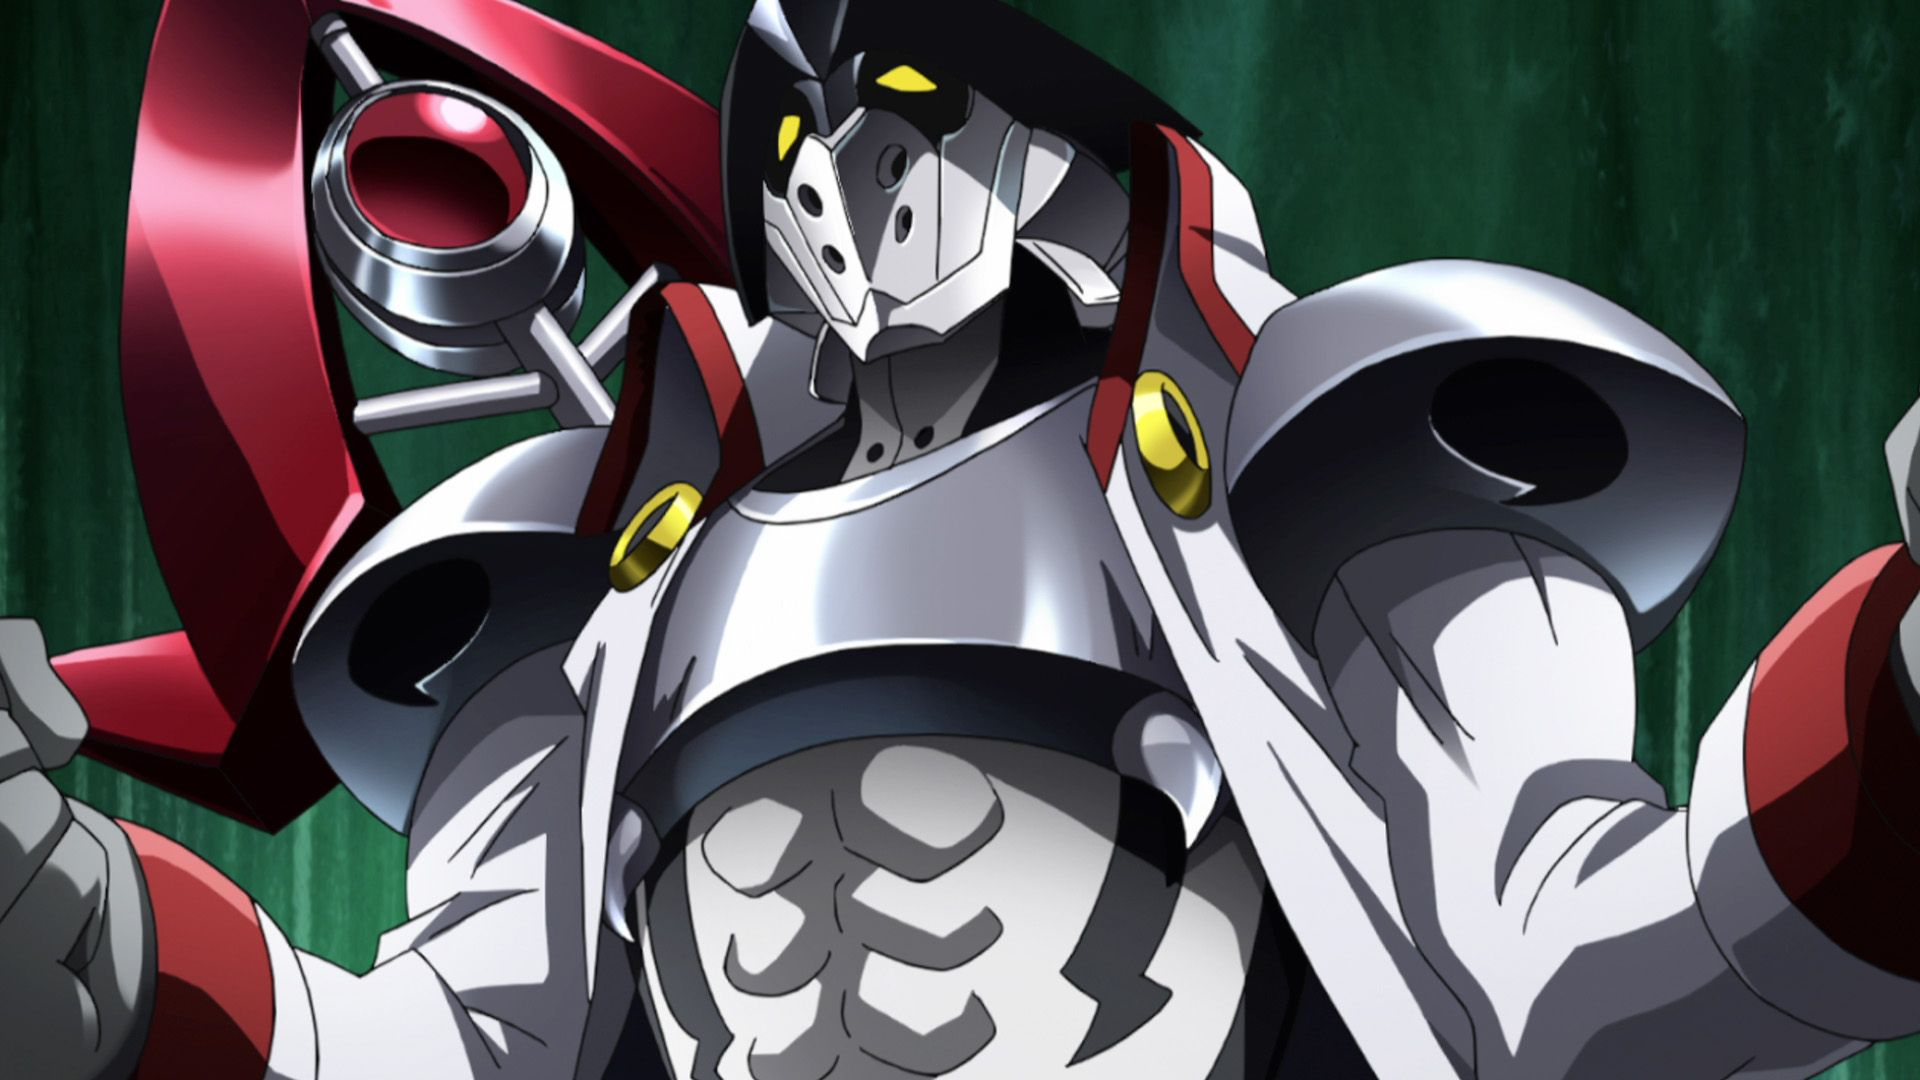 Red Eyes Sword Akame Ga Kill Akame Ga Kill Akame Ga Awesome